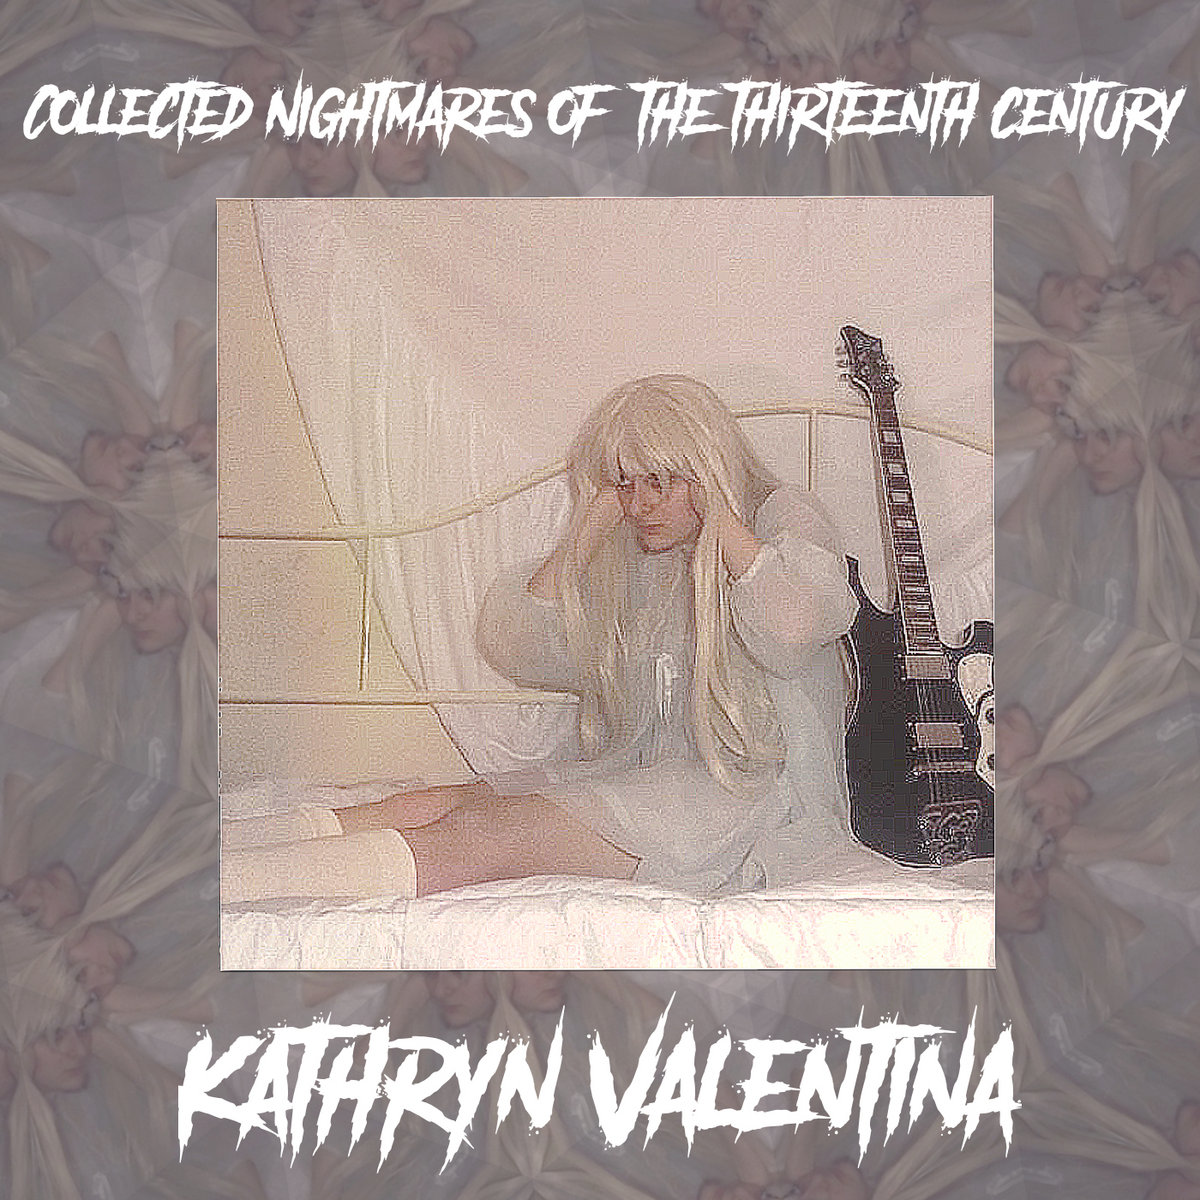 Album cover for Kathryn Valentina, A white femme in a short white dress, a long blond wig, and a black electric guitar sitting on a bed.